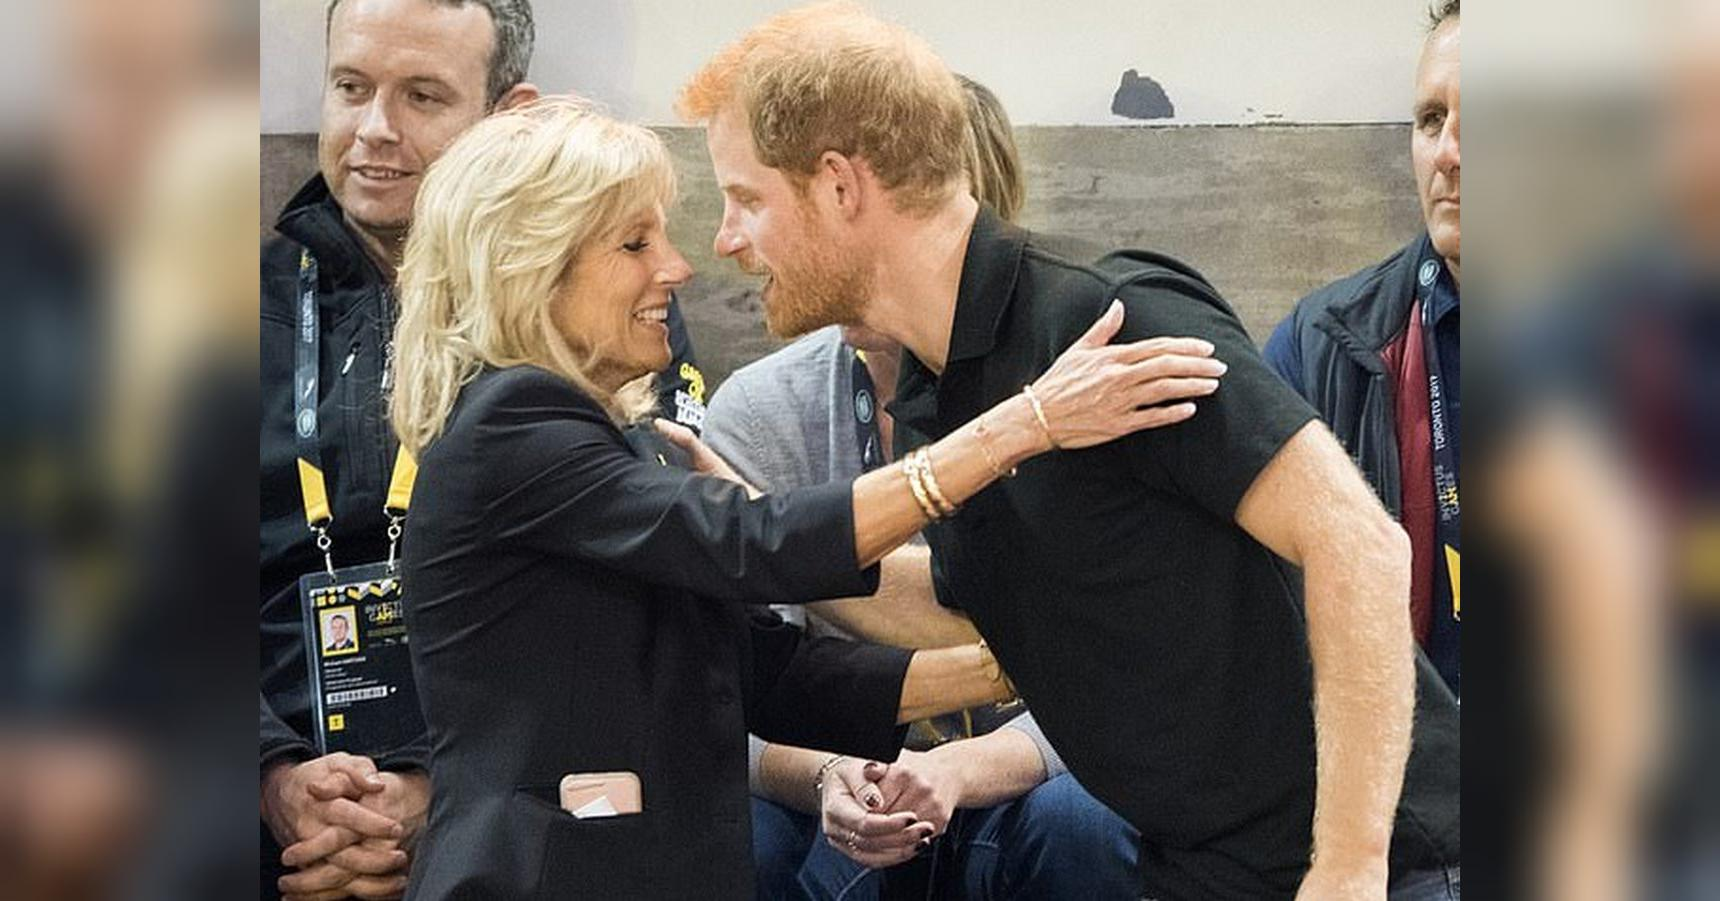 Prince Harry's surprising connection to Jill and Joe Biden